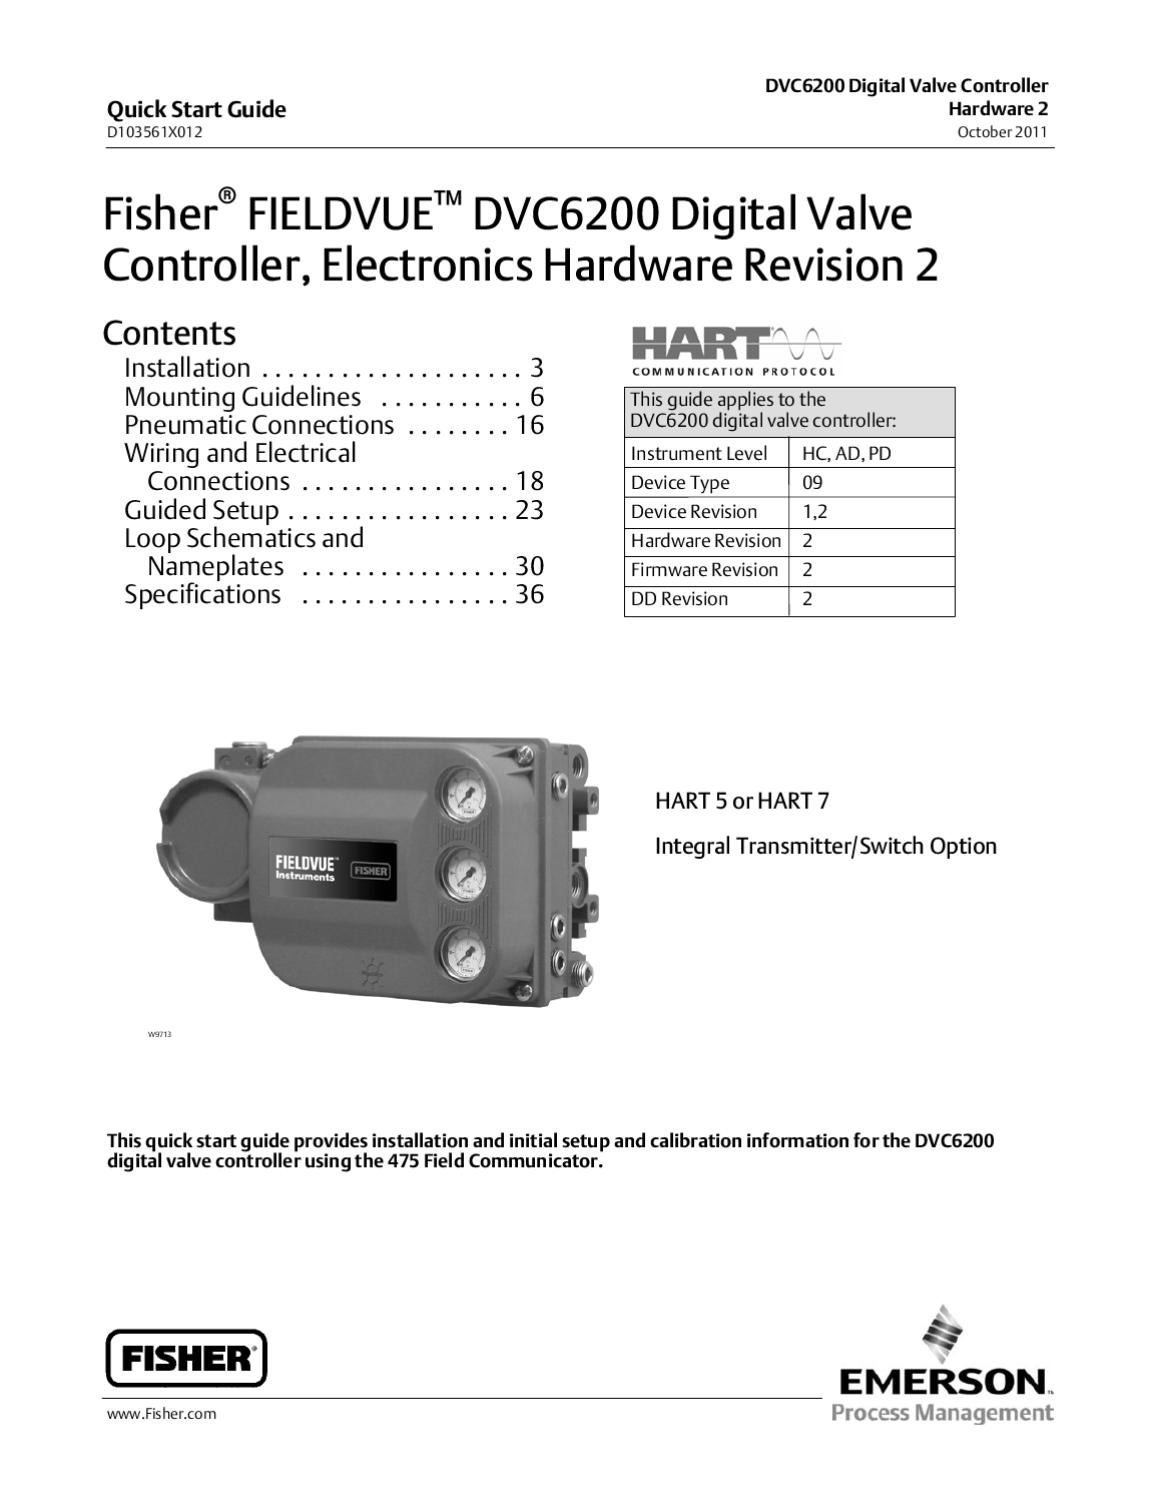 page_1 dvc6200 quick start guide elctrncs hrdwre rev 2 oct 2011 by rmc fisher dvc 2000 wiring diagram at mifinder.co